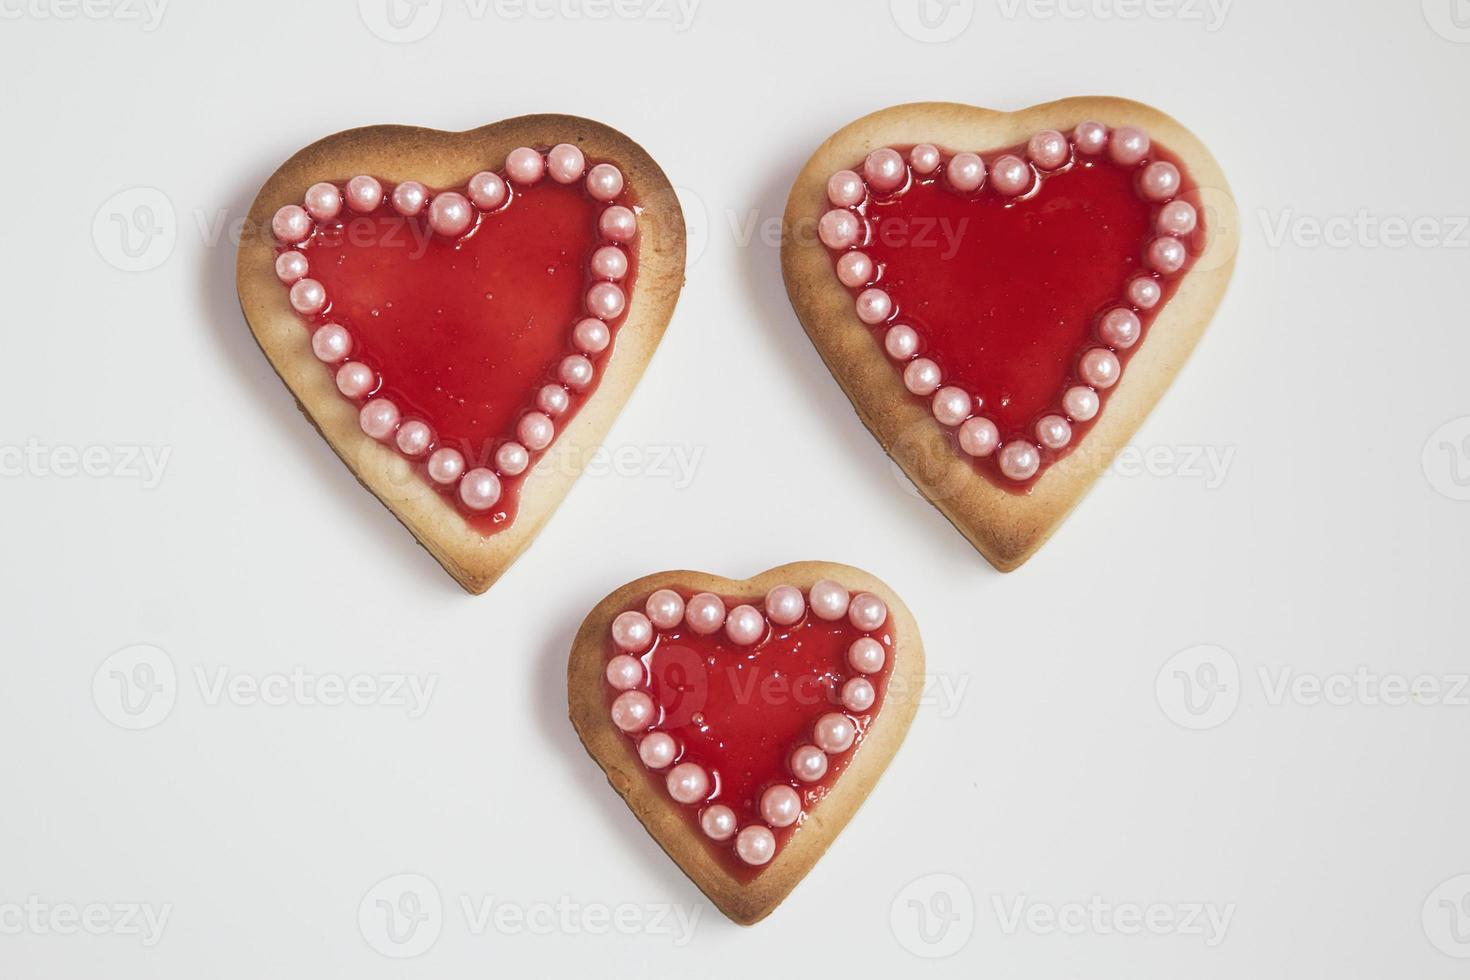 Three romantic heart shaped homemade Valentine cookies over a wh photo